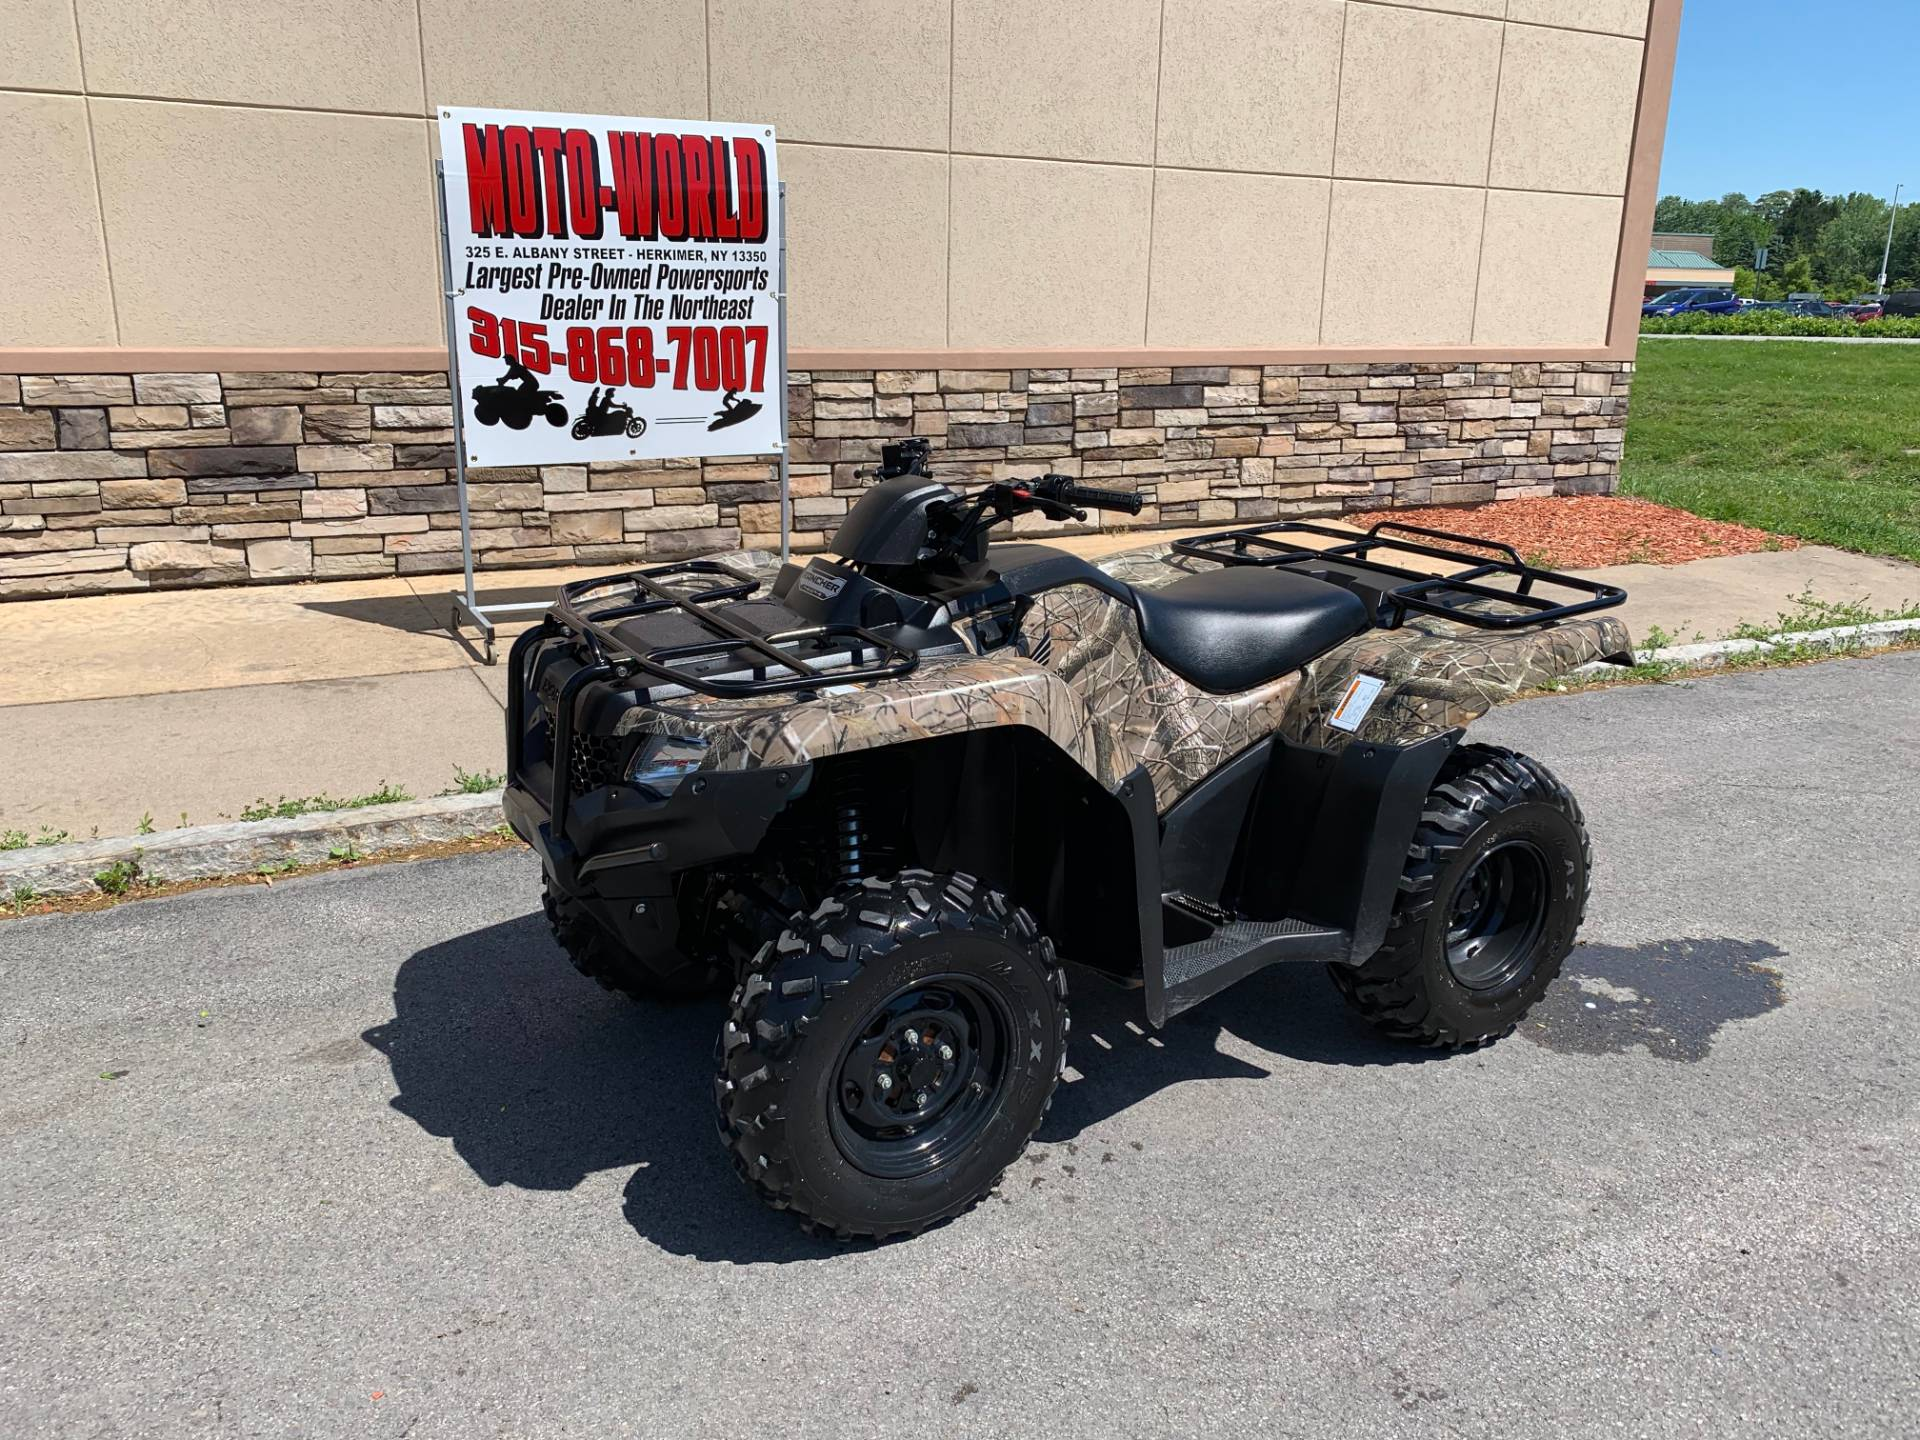 2017 Honda FourTrax Rancher 4x4 in Herkimer, New York - Photo 3